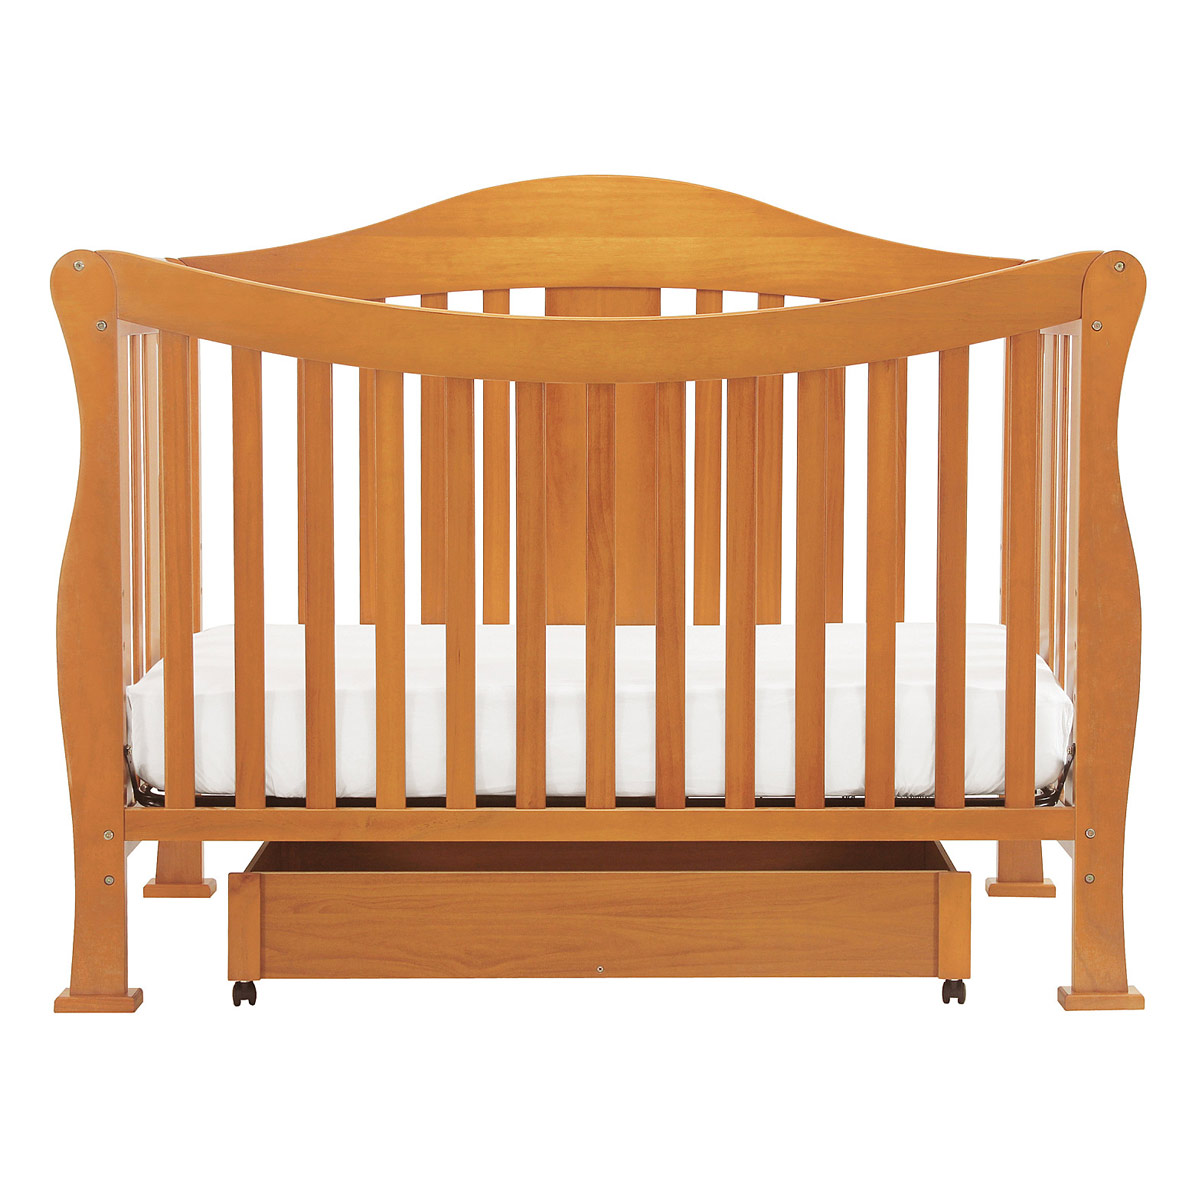 79 davinci rivington crib amazon davinci rivington for Double decker crib